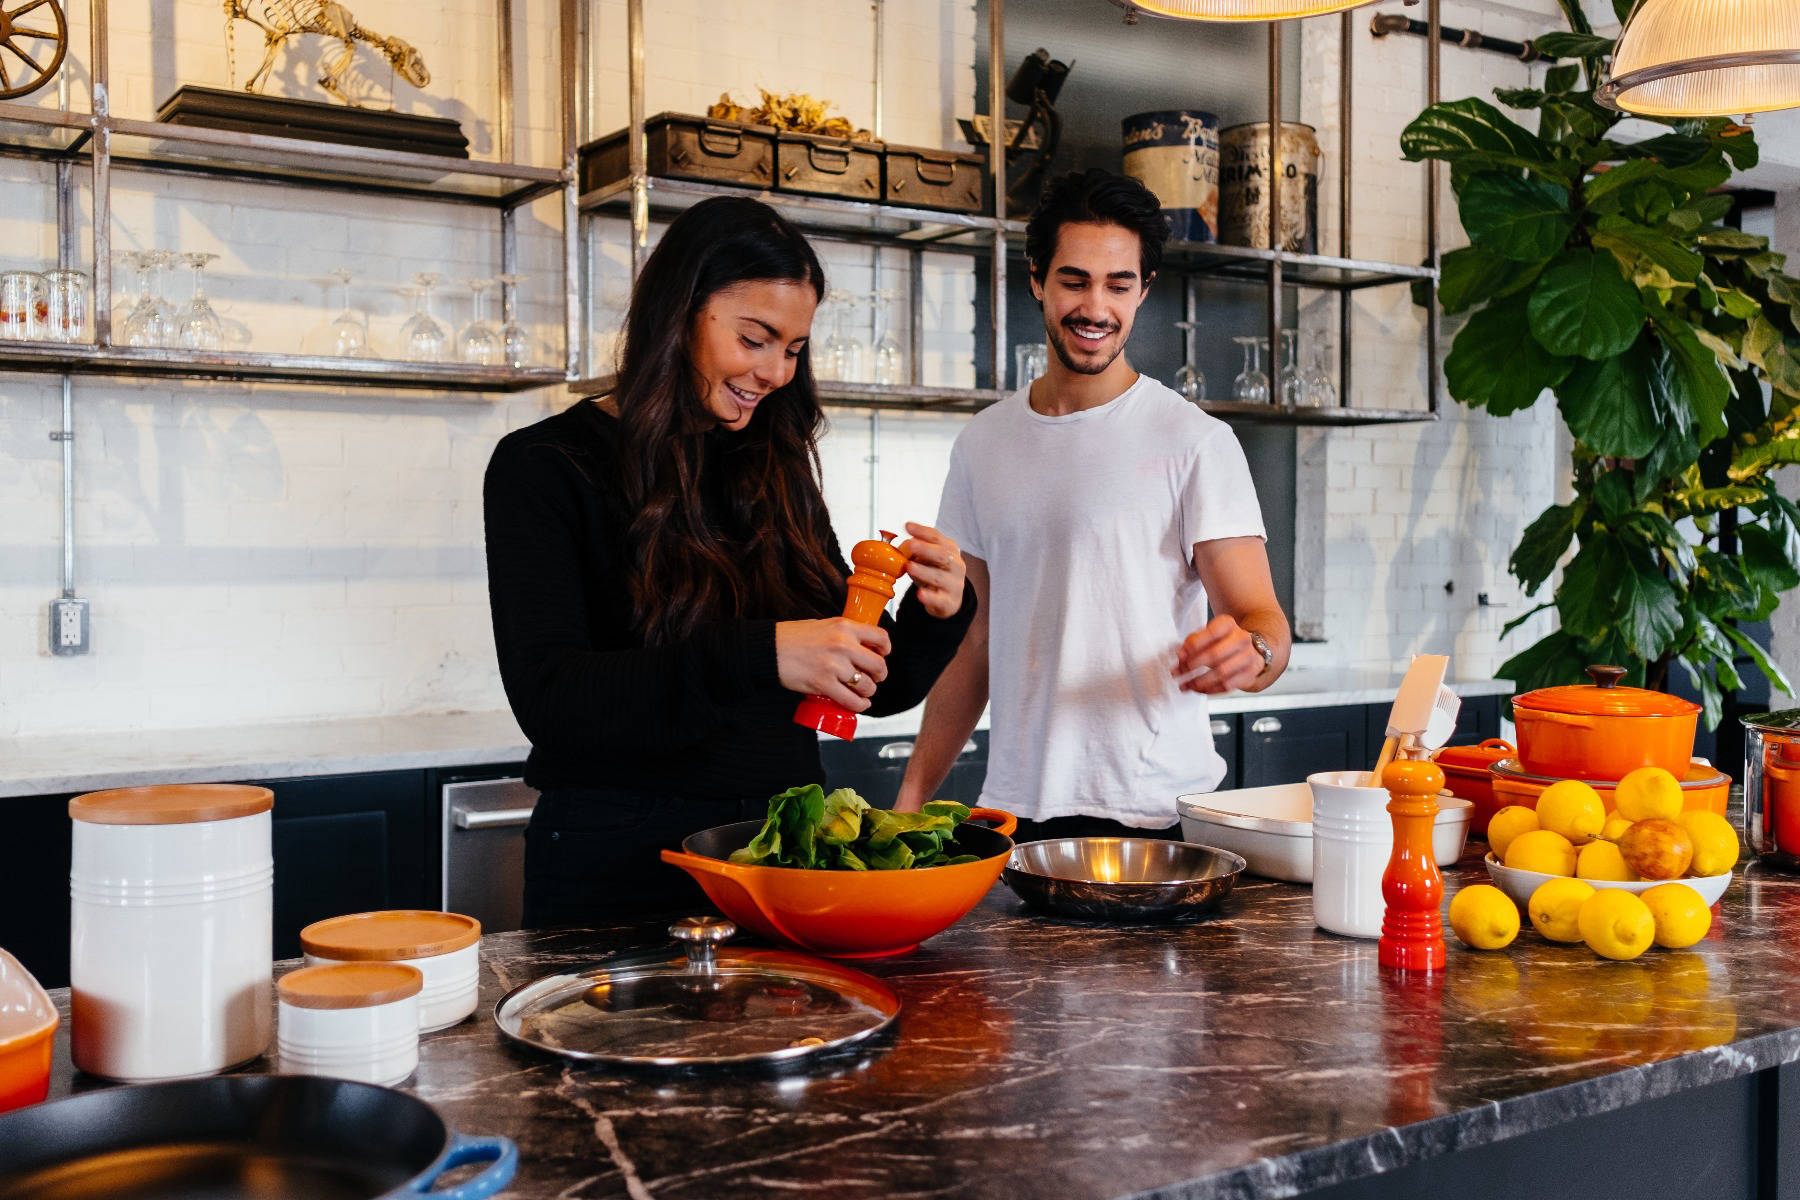 Couple making food in bright kitchen